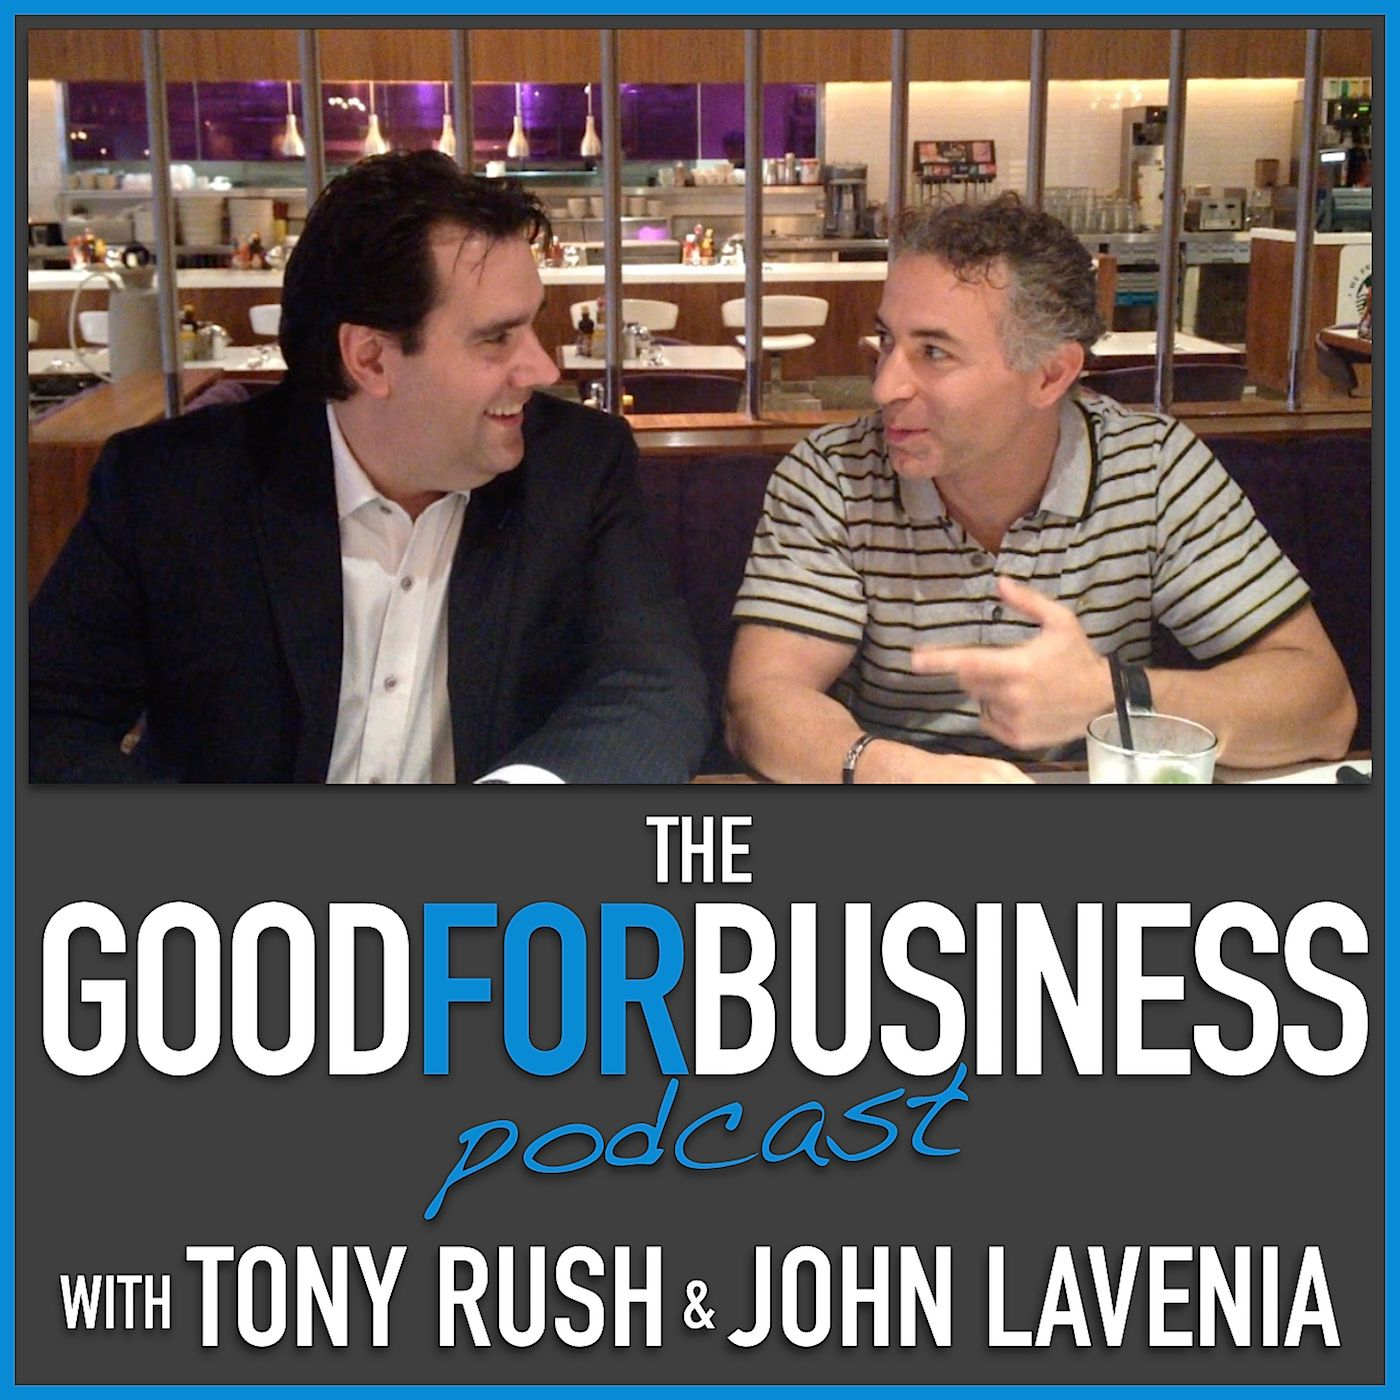 Good For Business Podcast